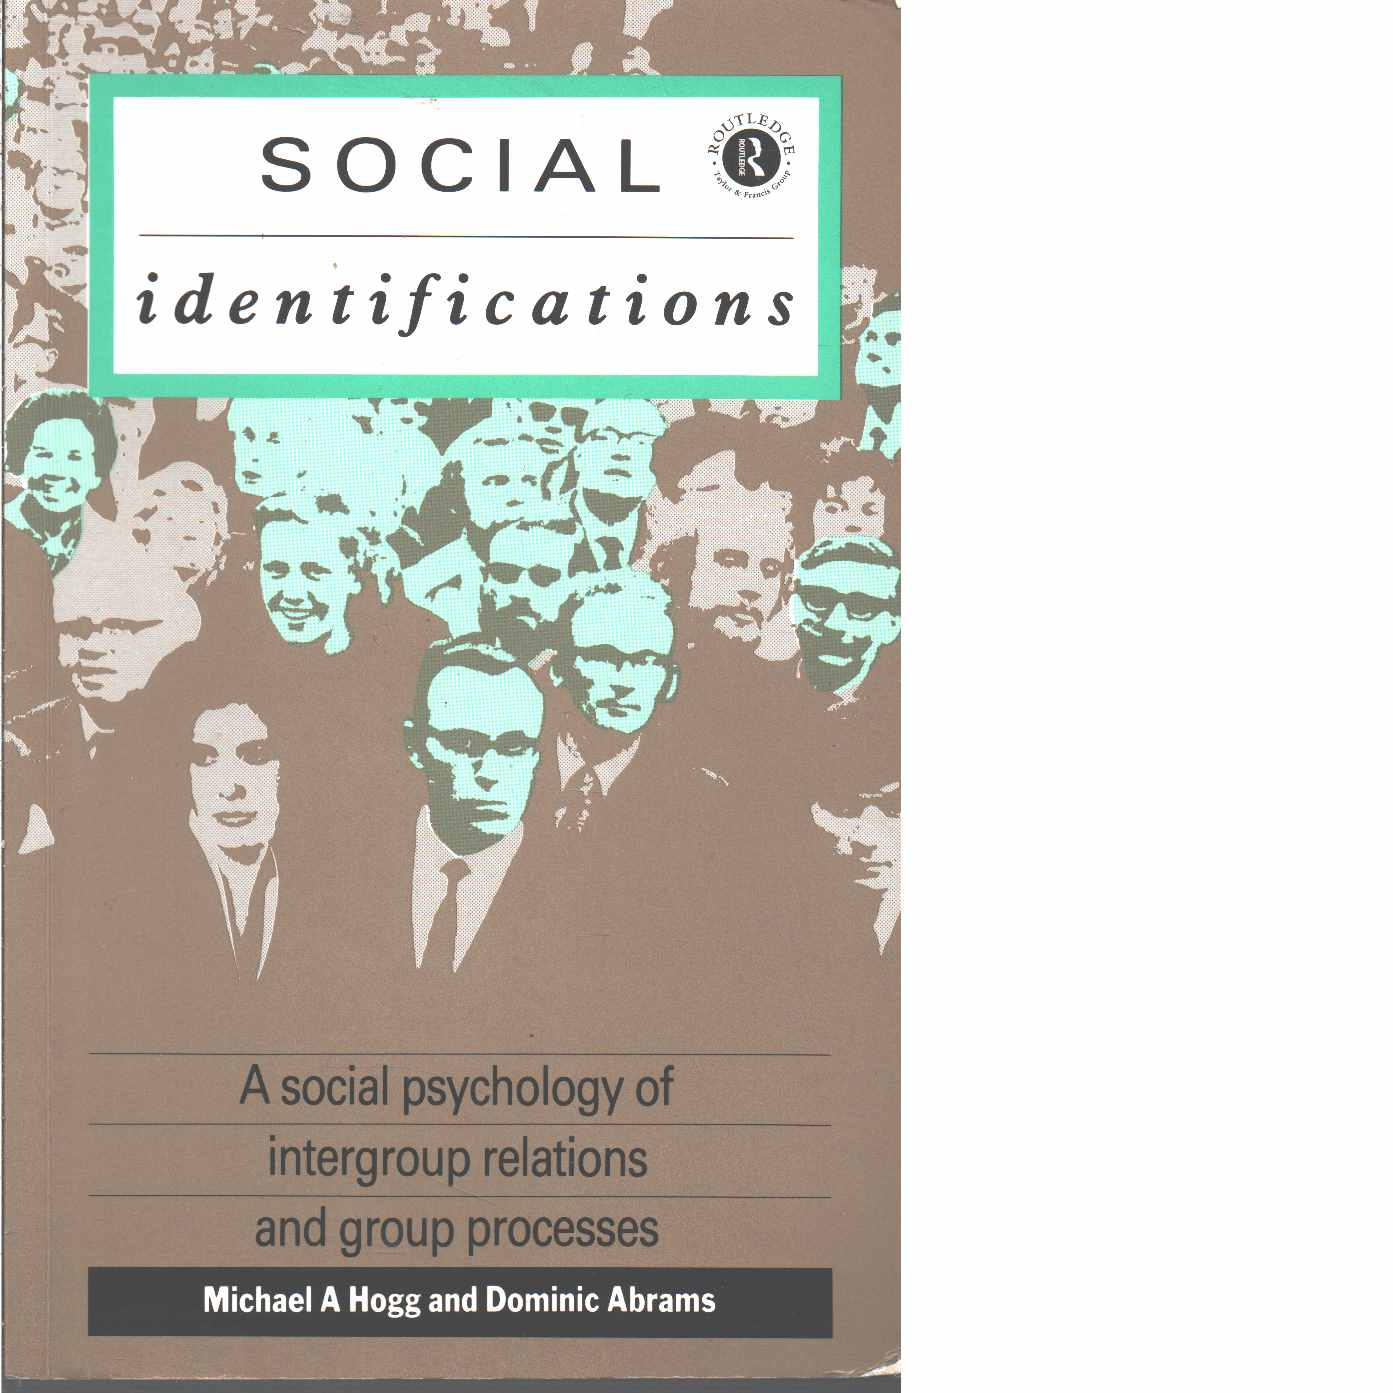 Social identifications : a social psychology of intergroup relations and group processes  - Hogg, Michael A. and Abrams, Dominic